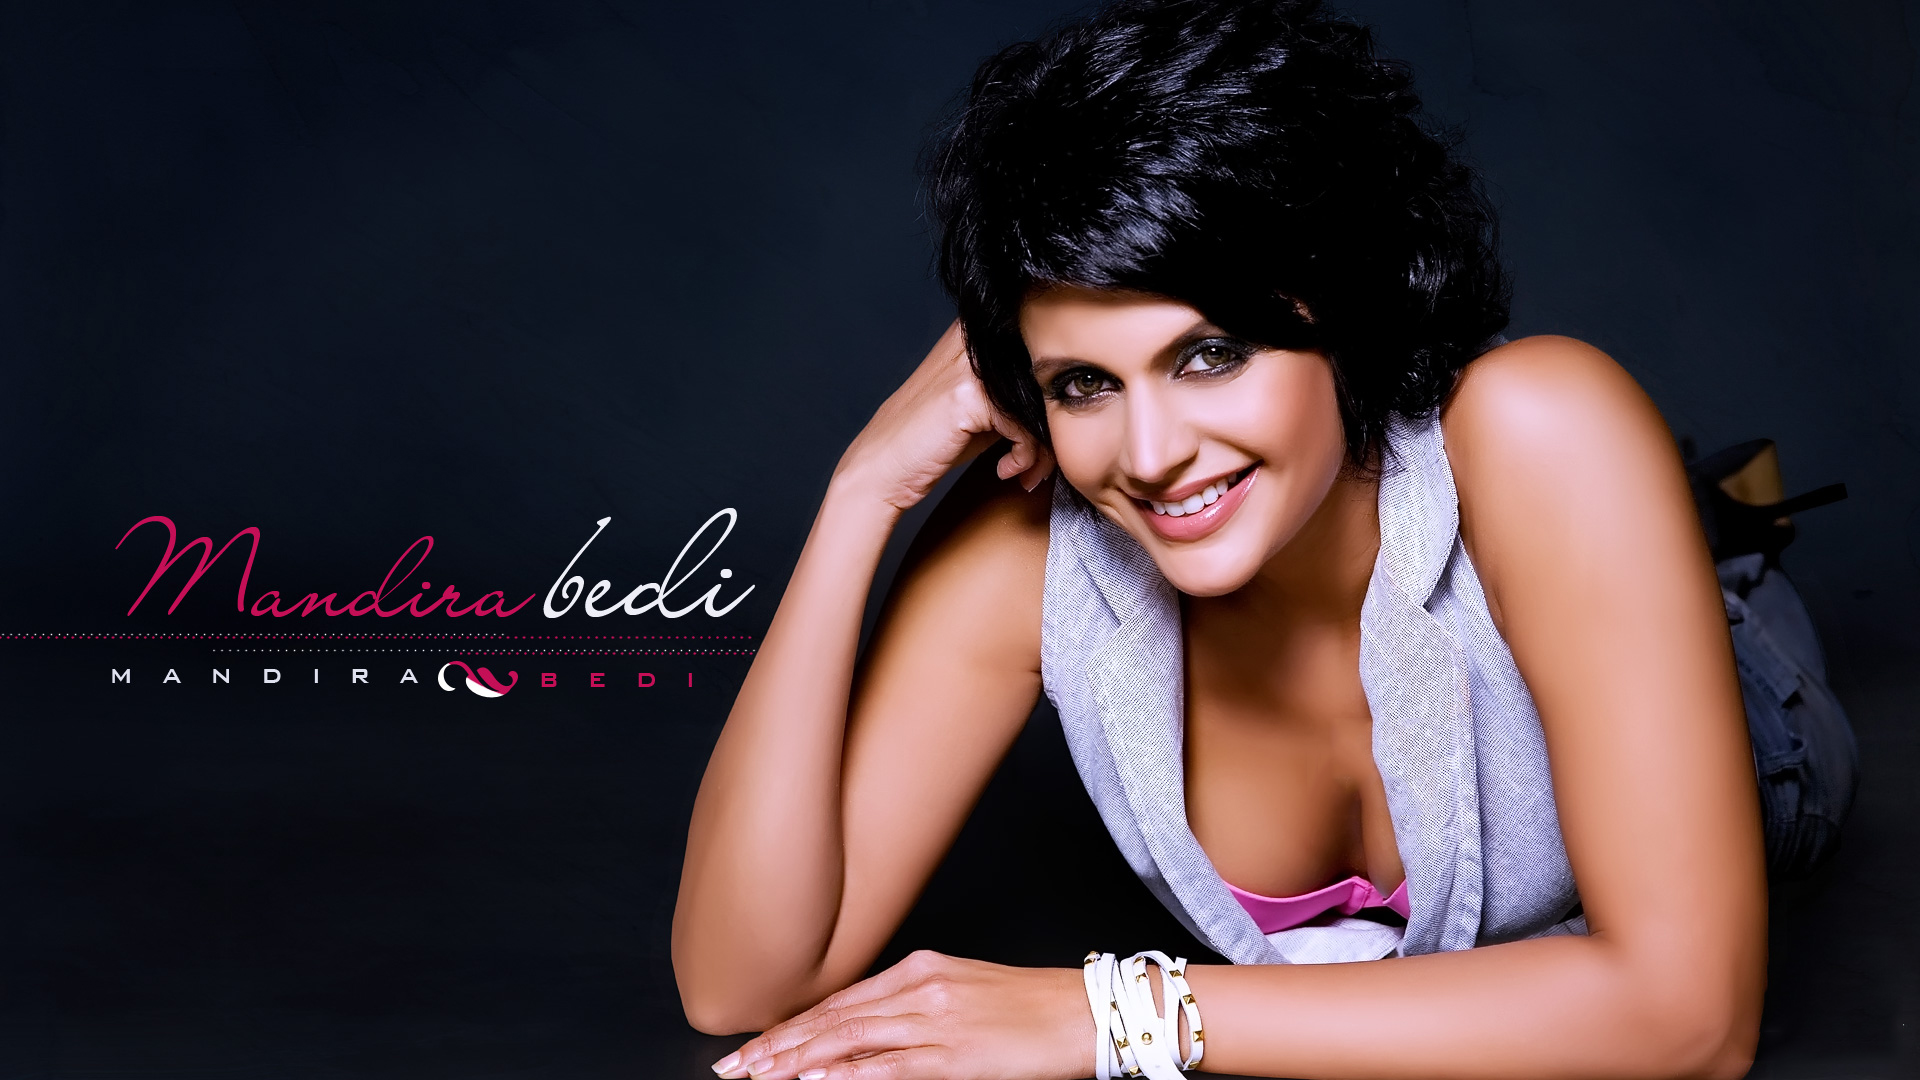 mandira-bedi-hot-cleavage-wallpaper_1920x1080